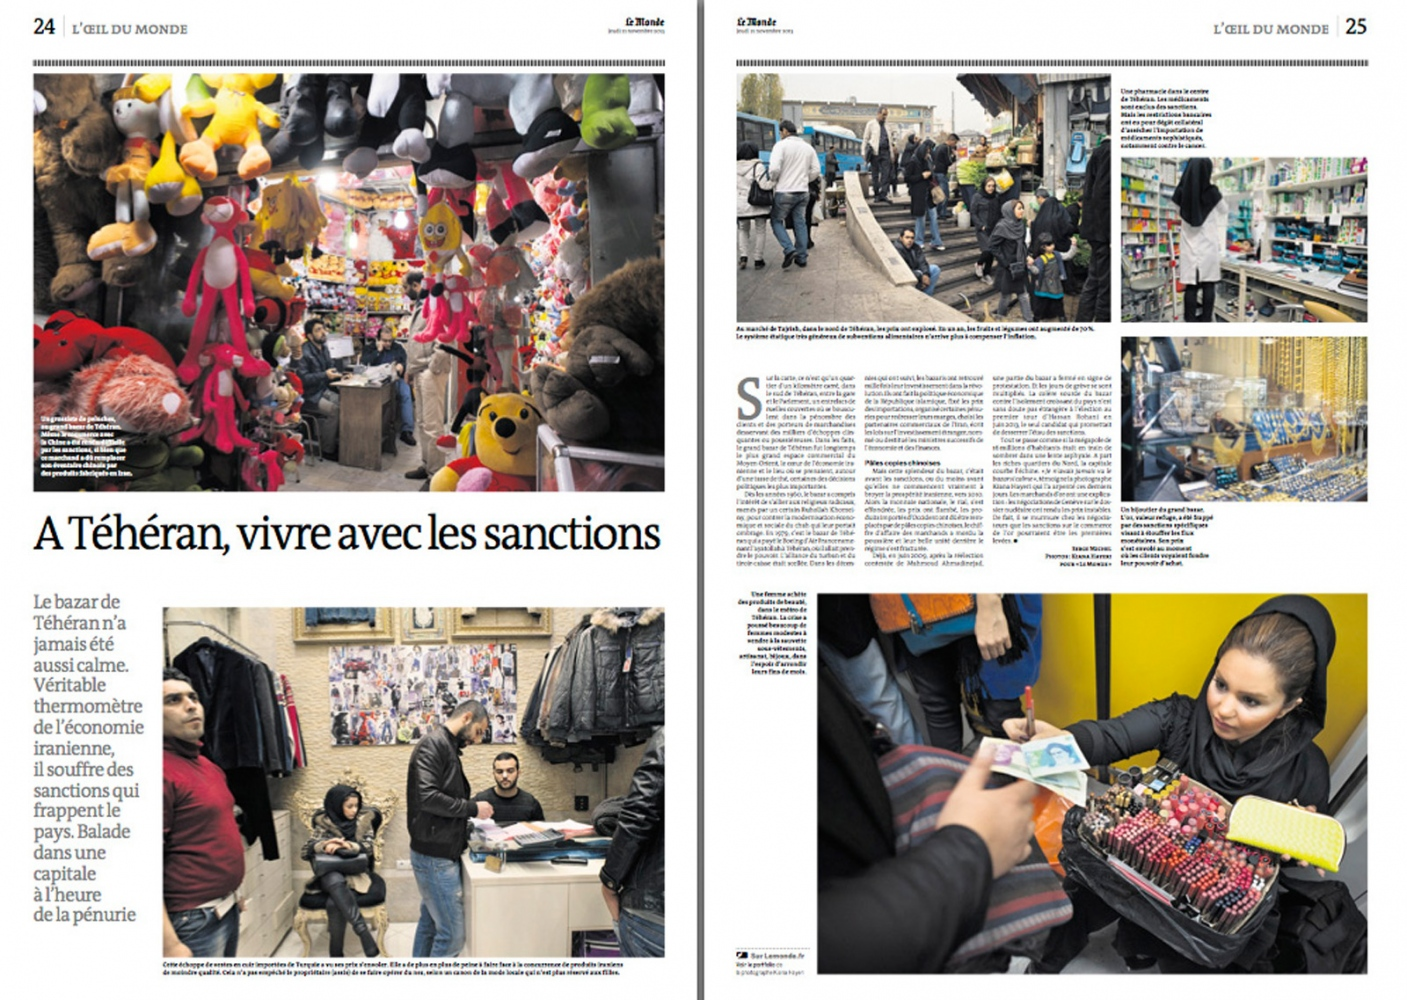 IRAN UNDER SANCTIONS, Le Monde (France) - 2013